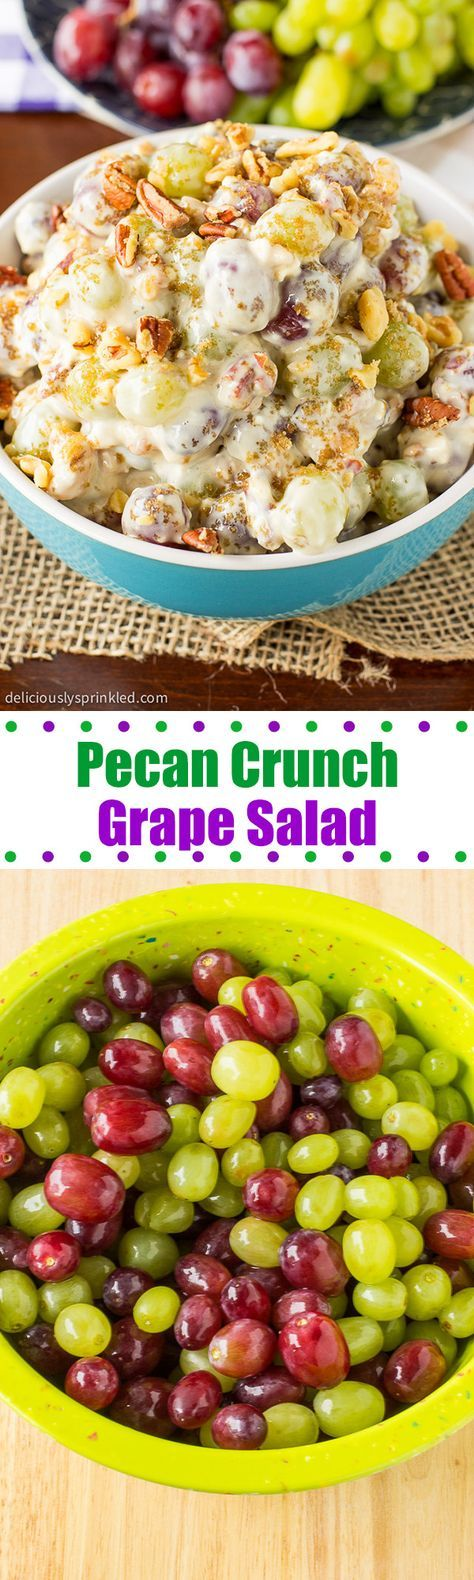 Pecan Crunch Grape Salad- a must have fruit salad that everyone loves!